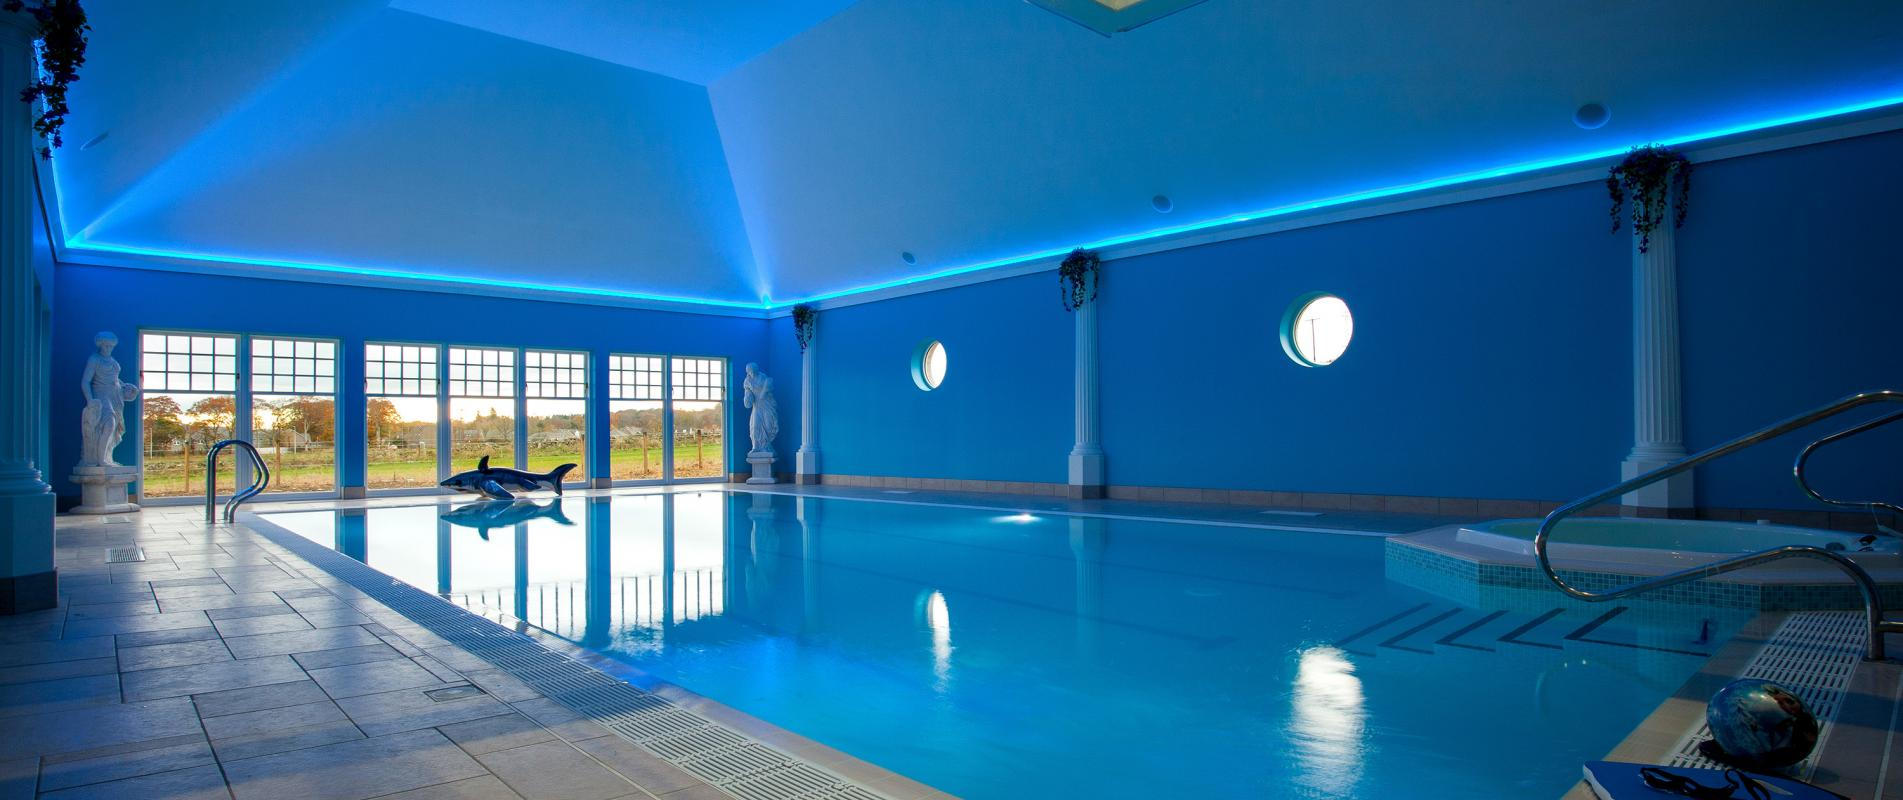 Swimming Pool Sauna Steam Room And Spa Pool Installers